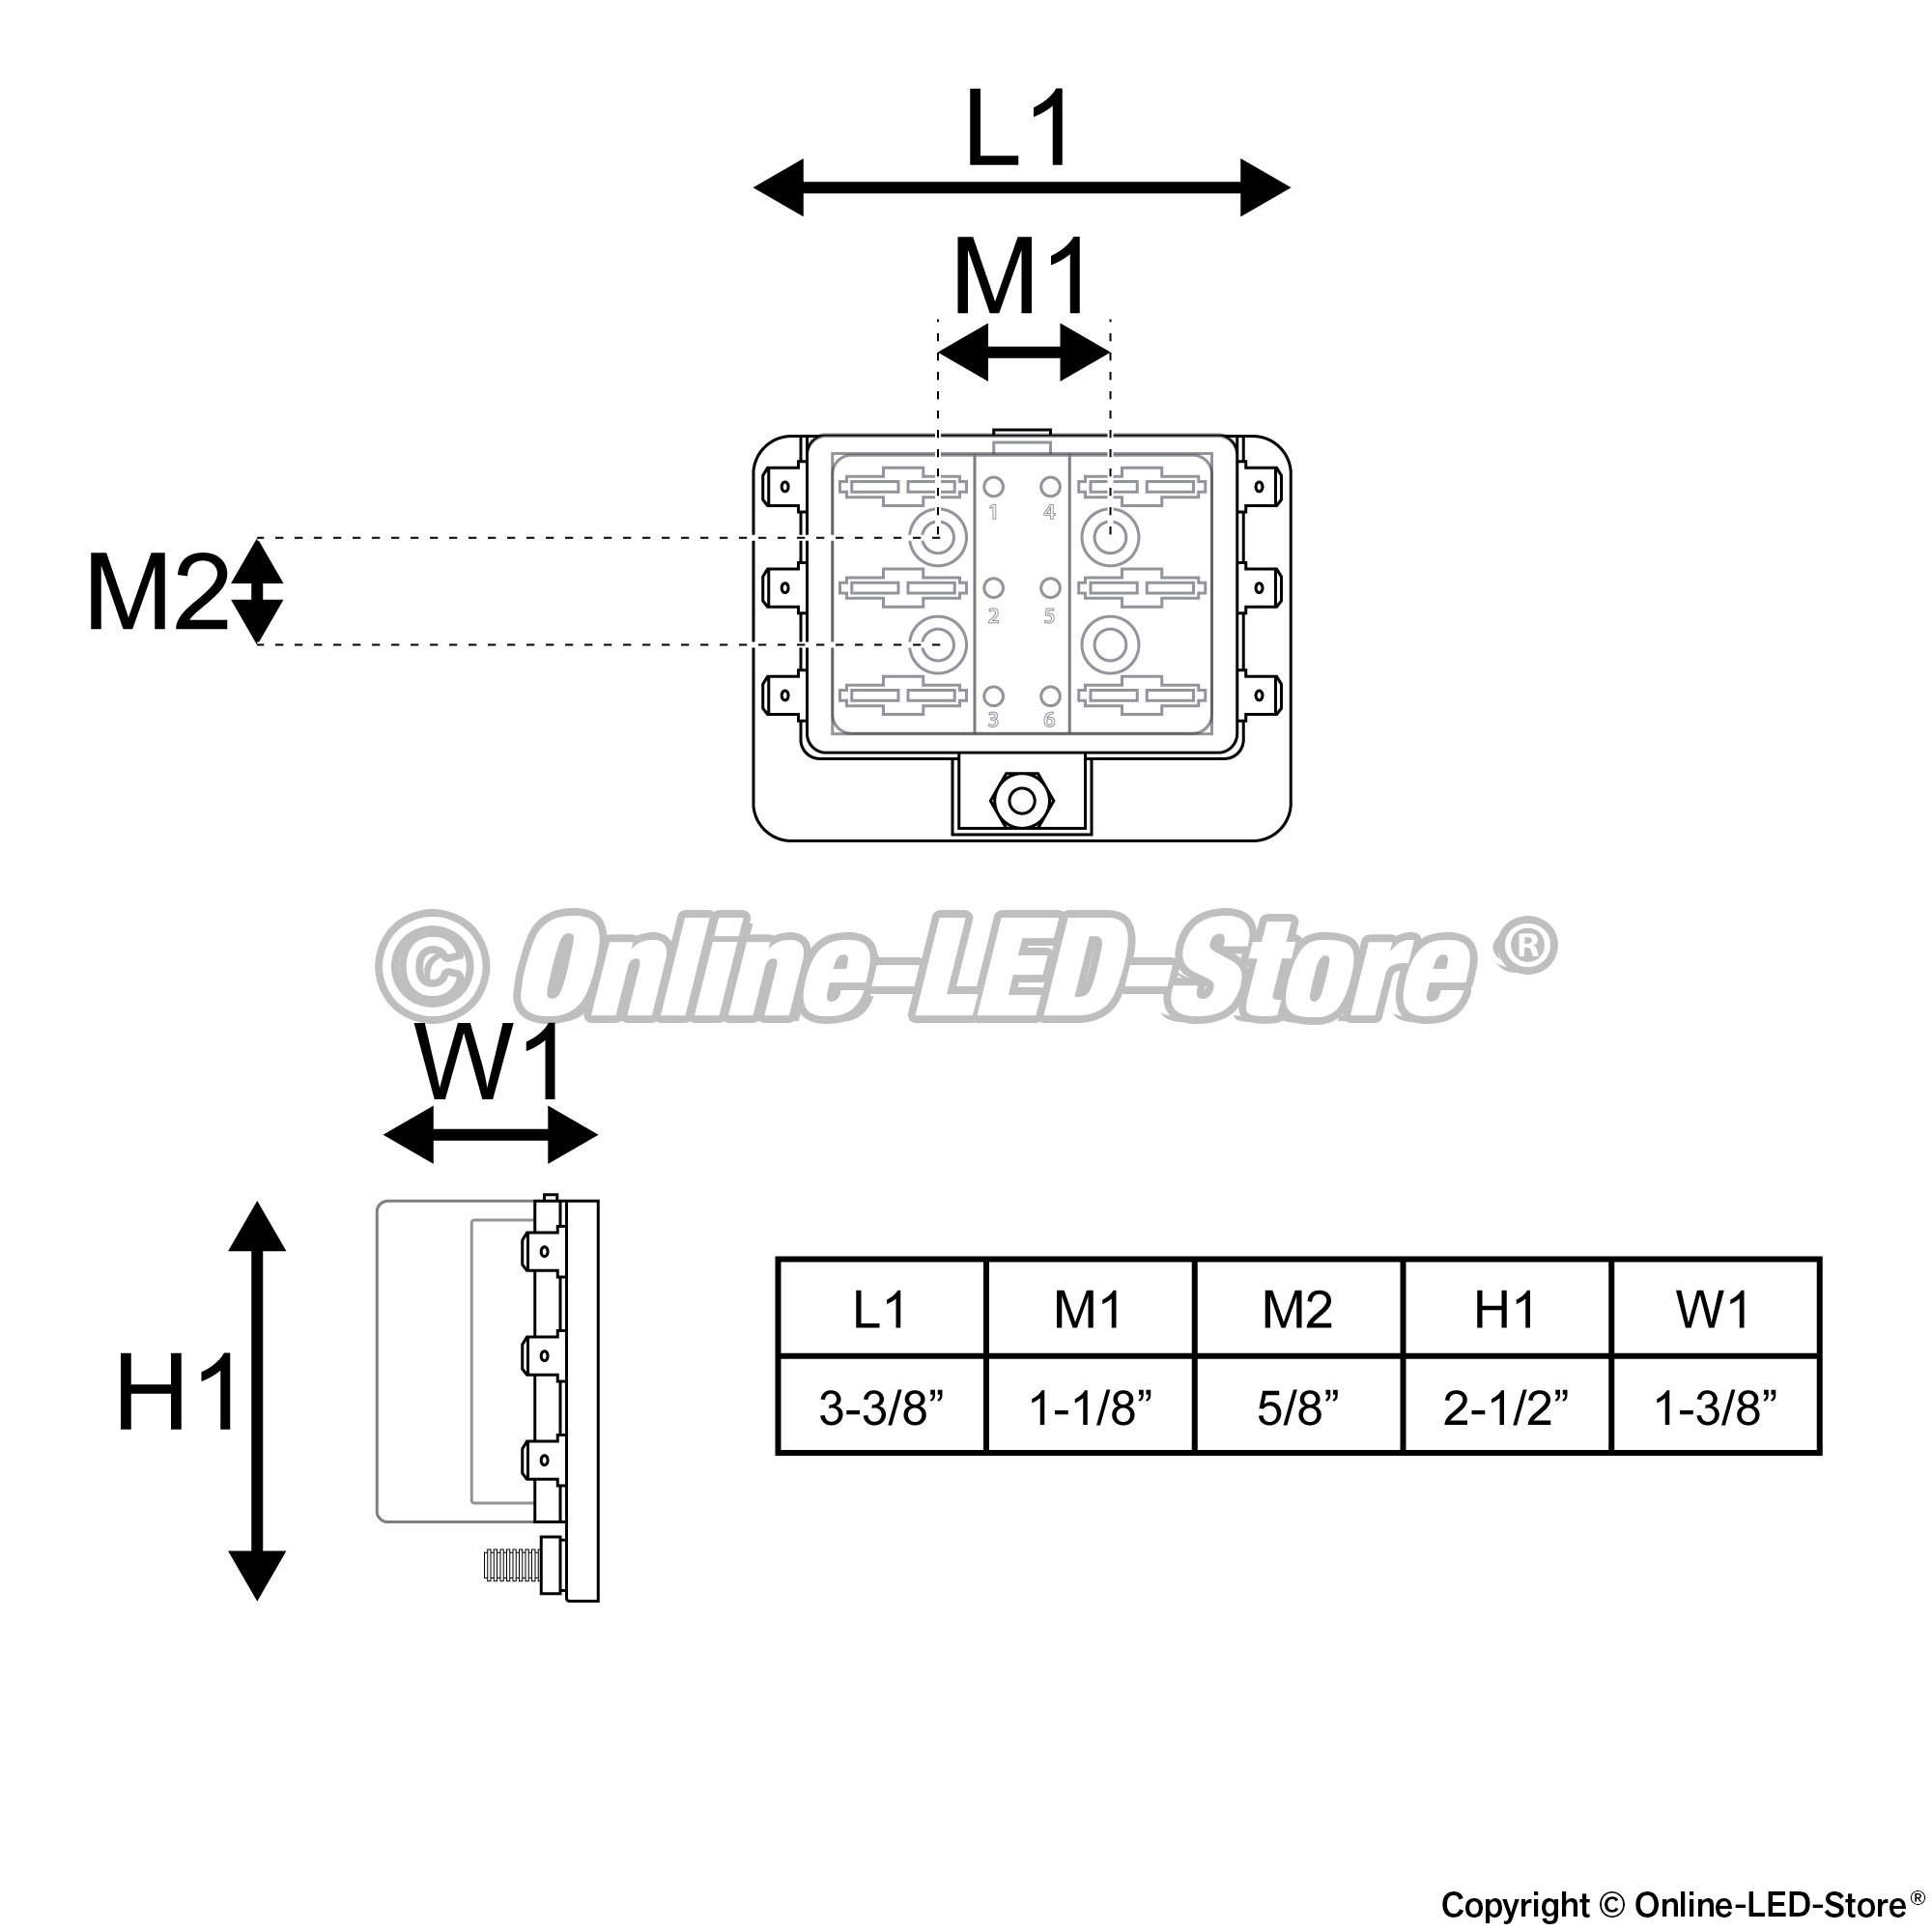 6 Way Blade Fuse Box Led Indicator For Blown Protection Has Cover 100 Amp Block Automotive Pszacceps051h Boxes